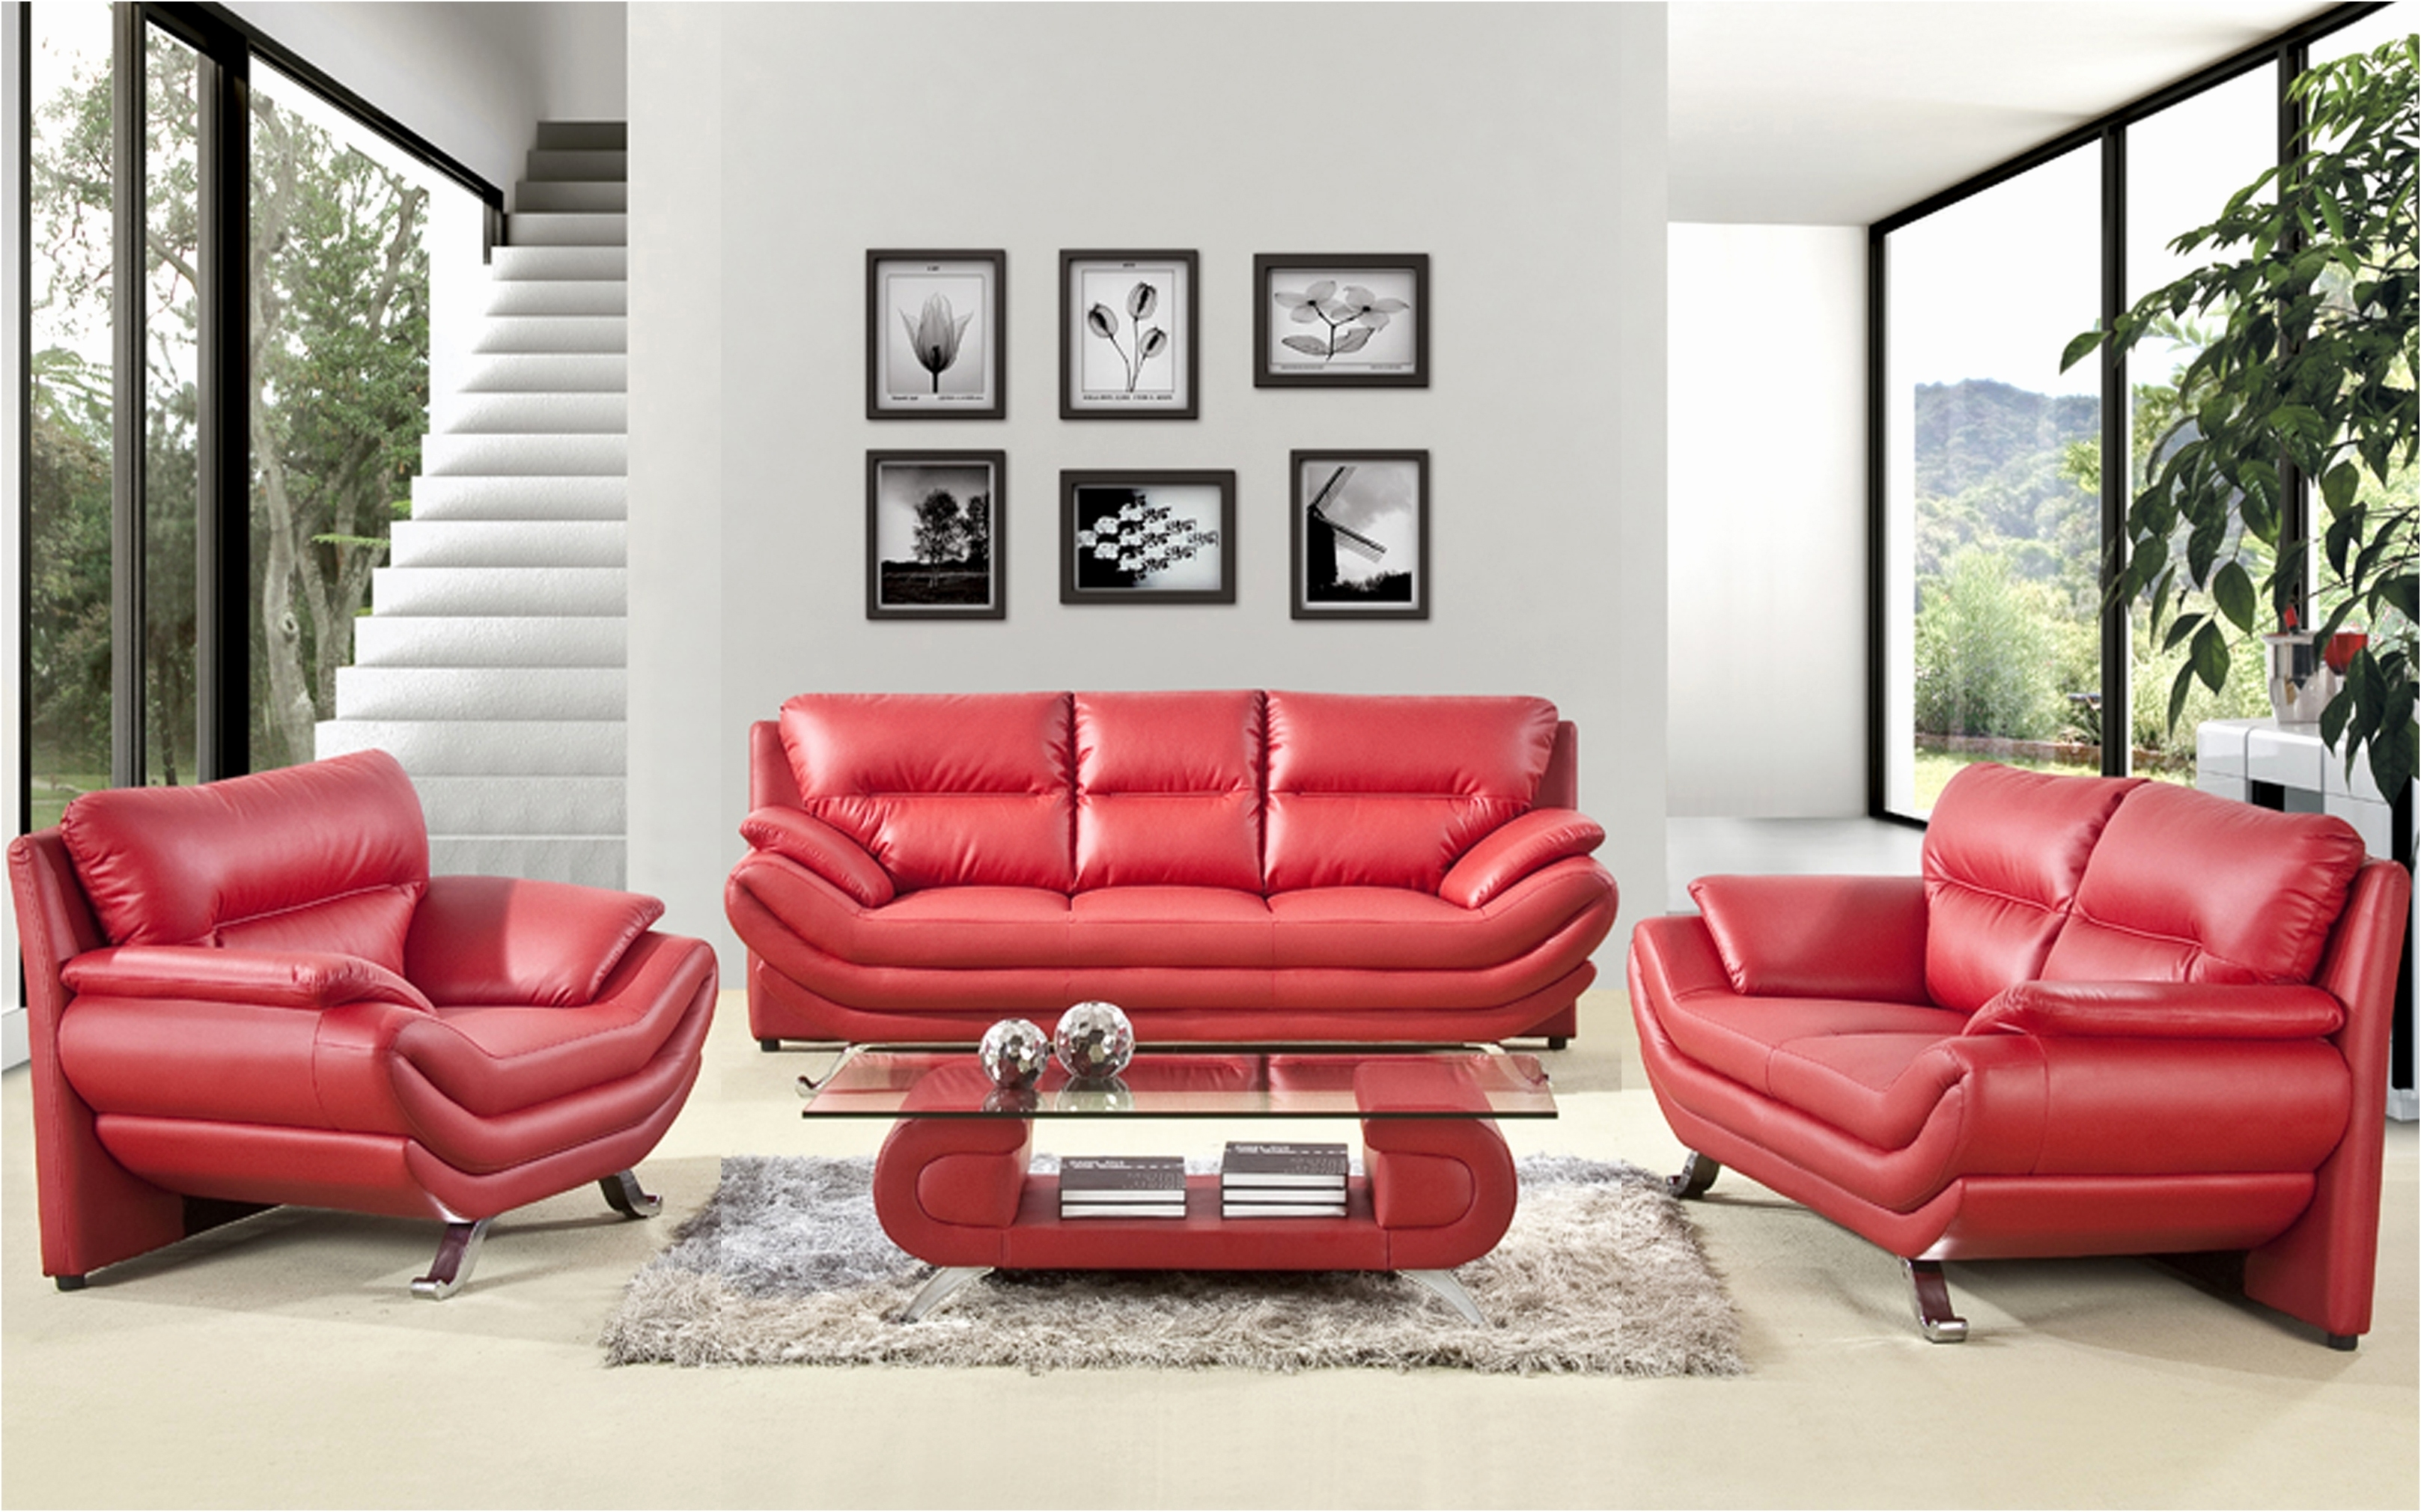 Awesome Red Leather Sofas Inspirational – Intuisiblog regarding Red Leather Couches For Living Room (Image 2 of 15)